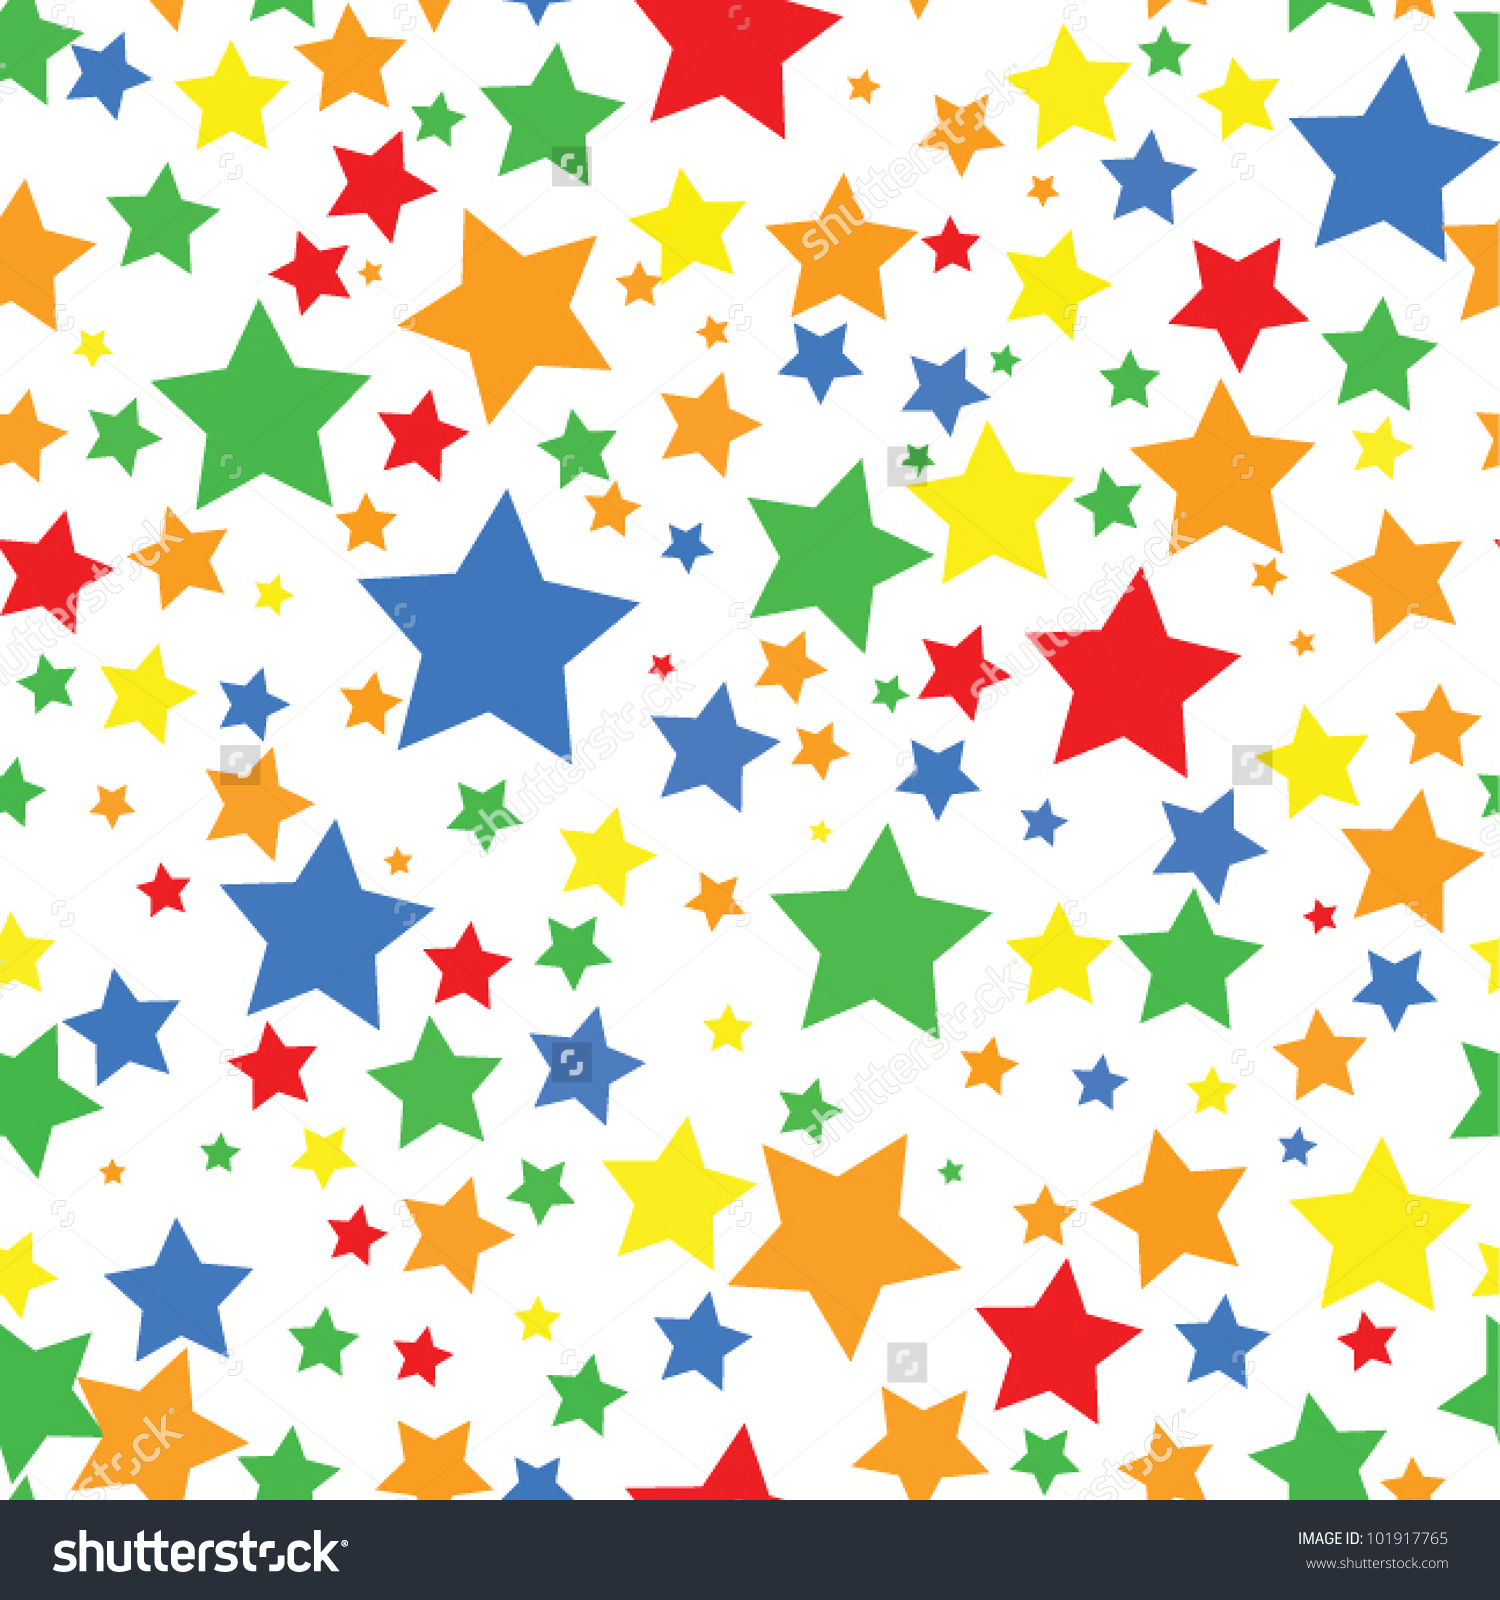 Star station . 7 clipart background